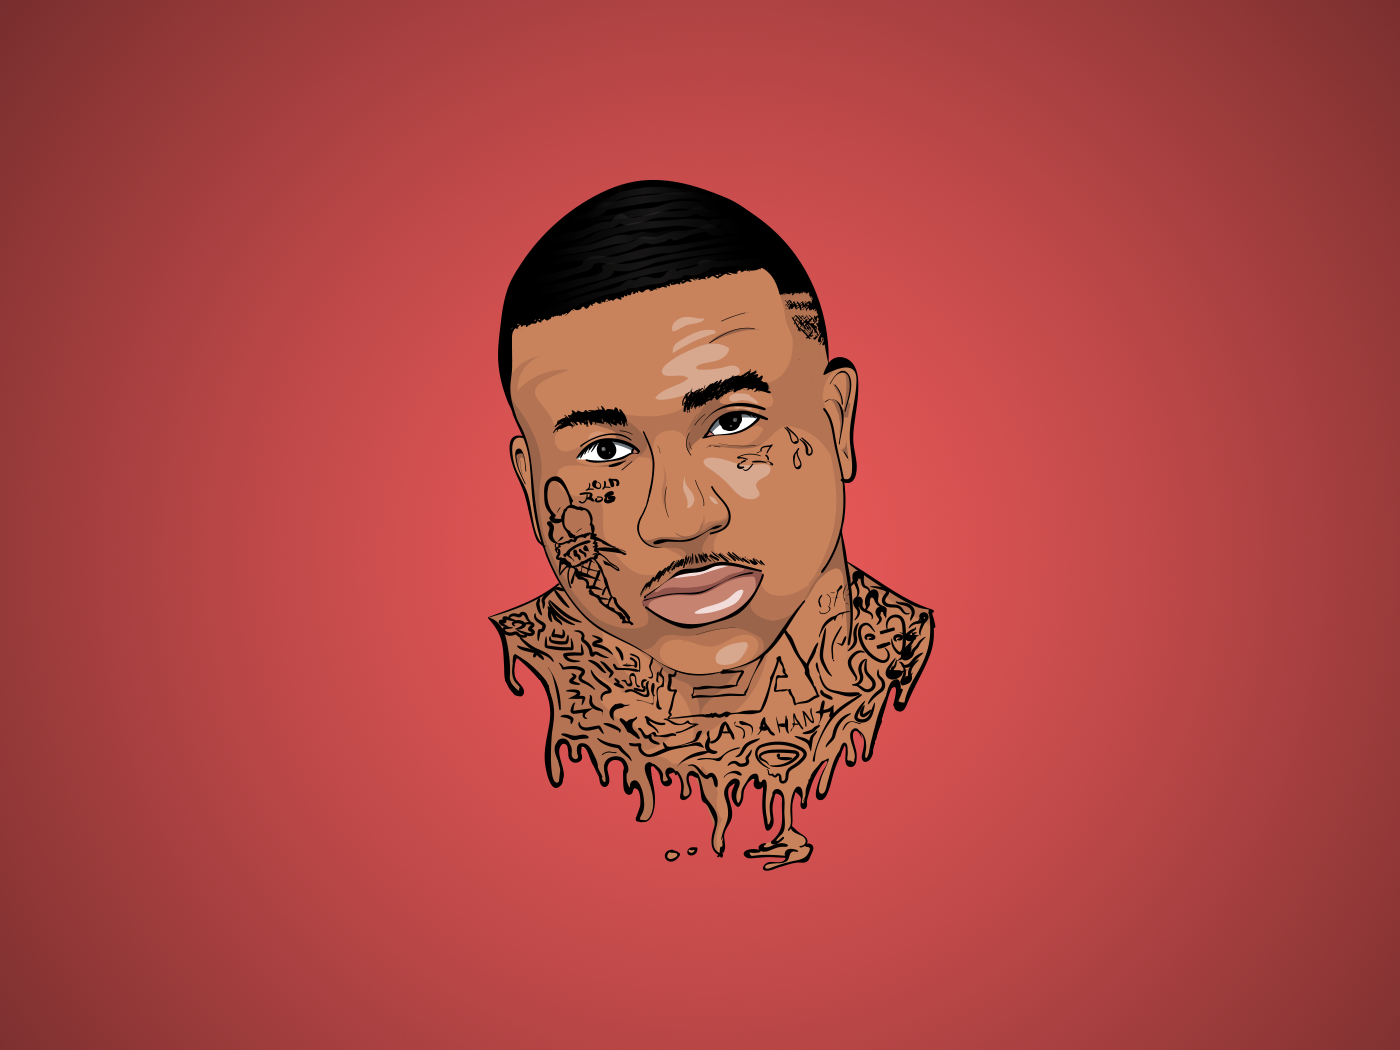 Gucci Mane Cartoon Portrait By Konrad On Dribbble